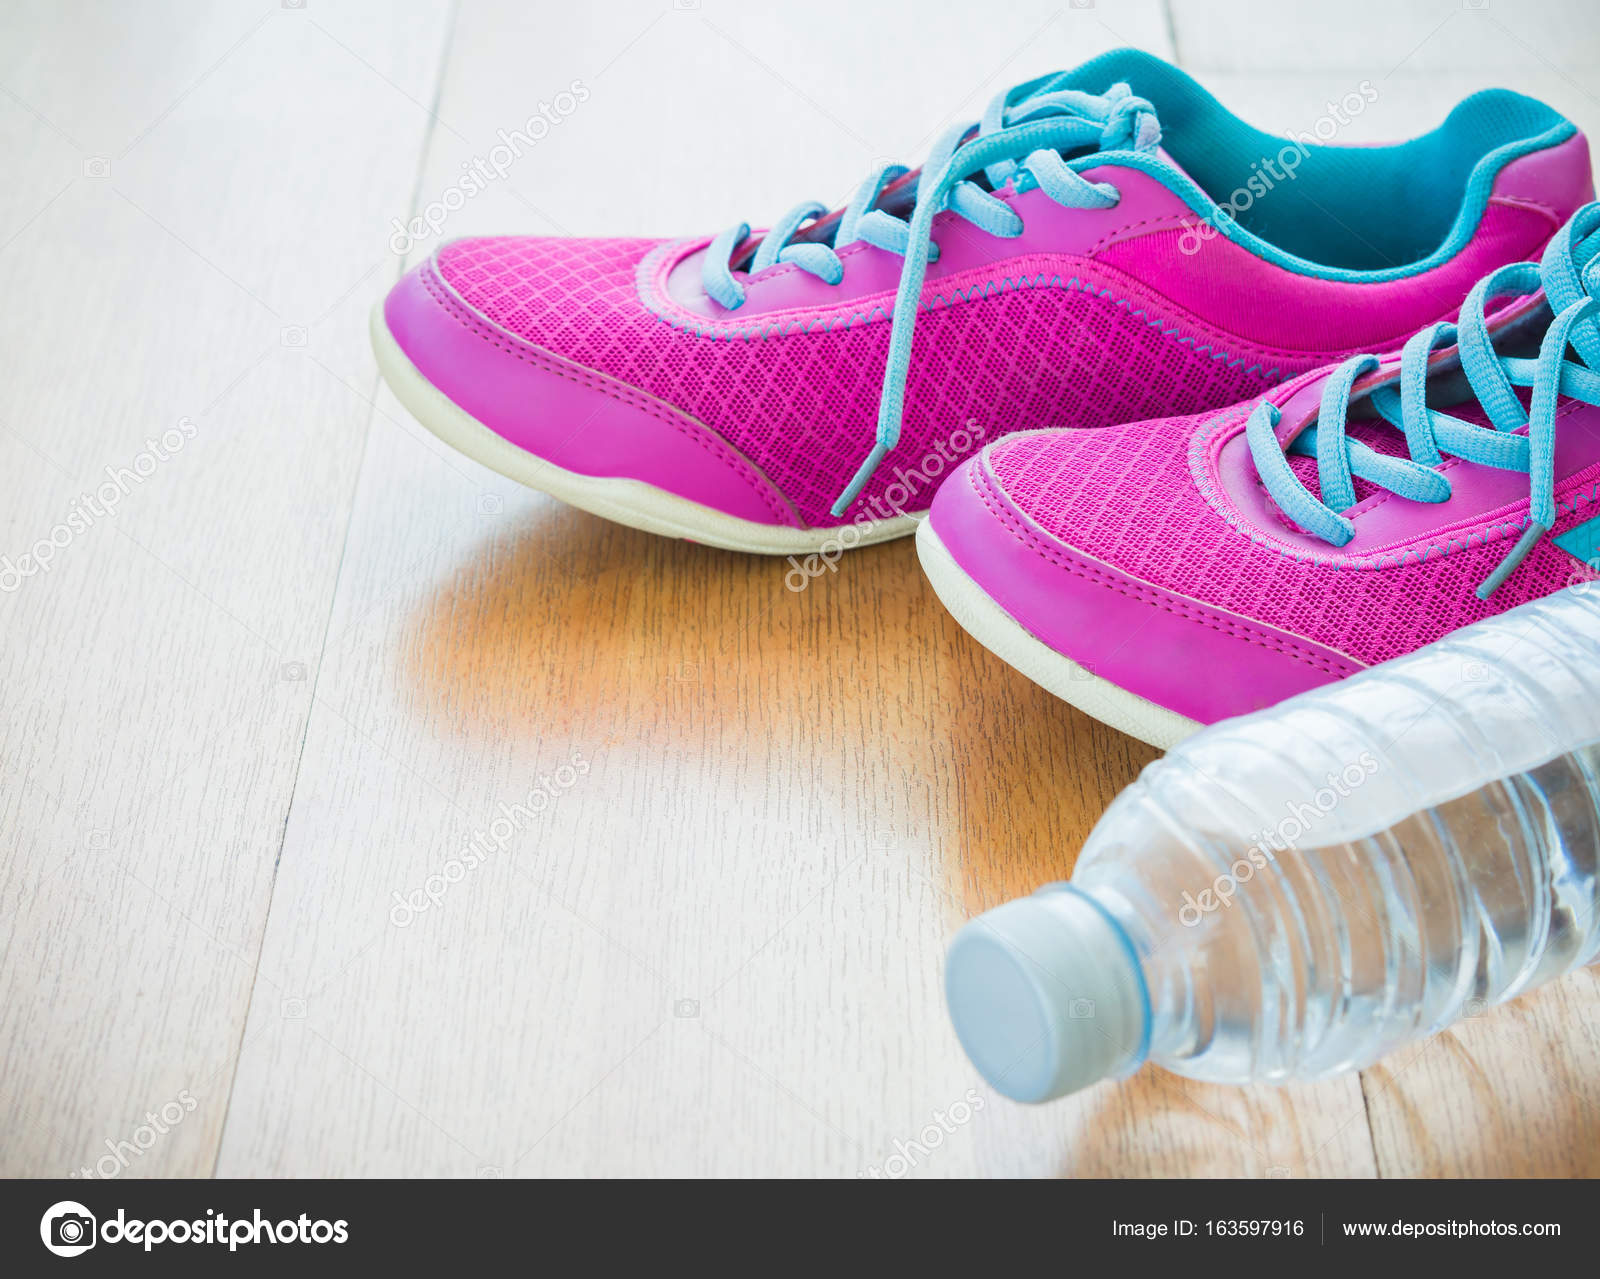 2ae6f51389f53 Pair of pink sport shoes and water bottle with wooden background — Stock  Photo